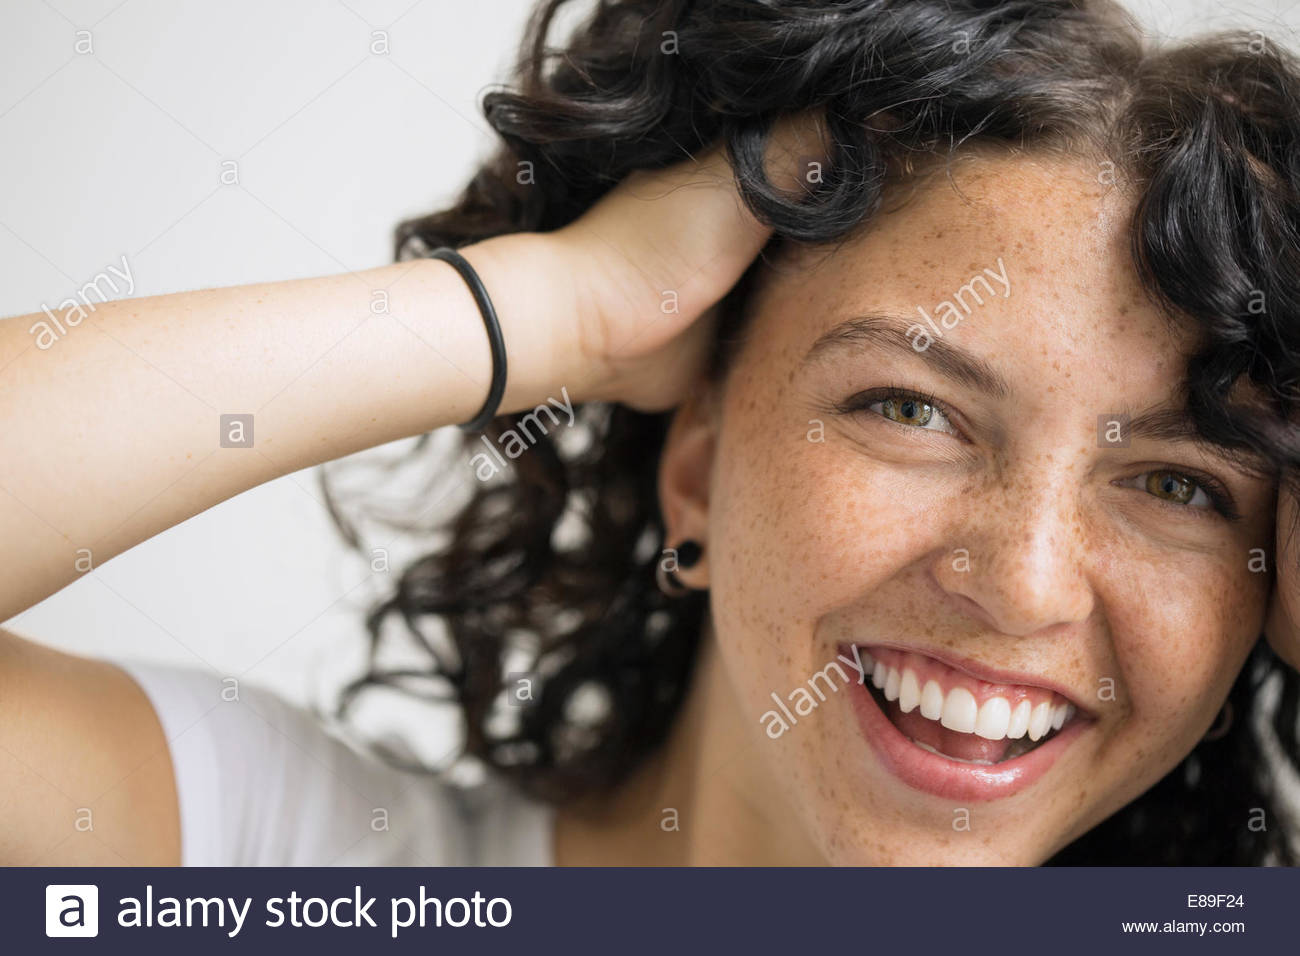 Portrait of smiling woman with hands in hair Photo Stock